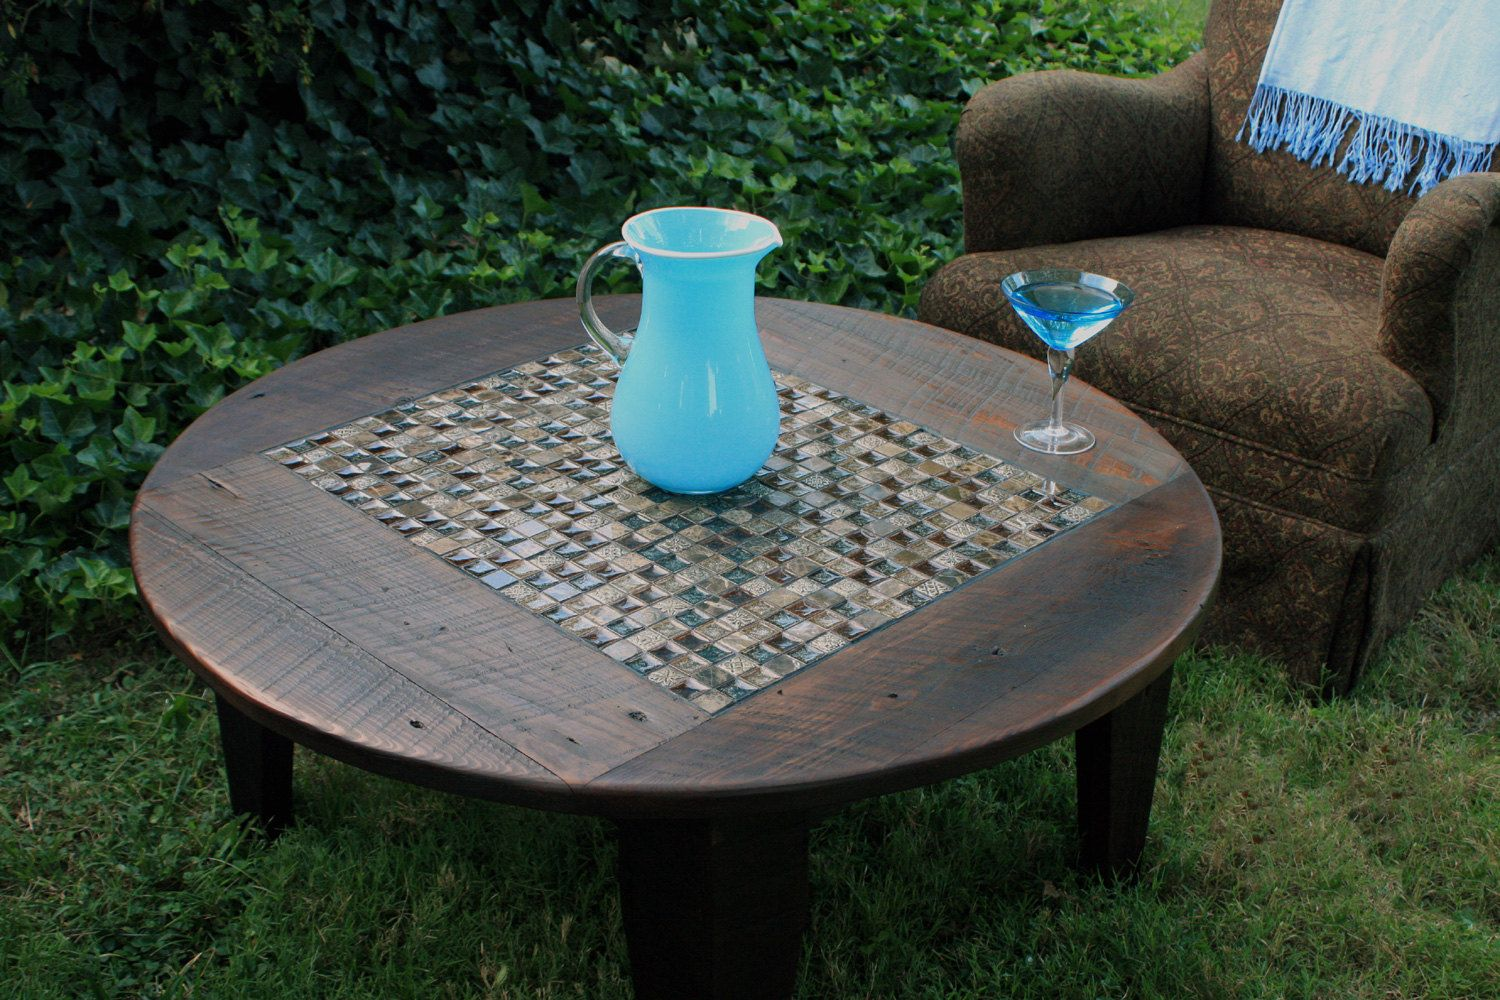 Stupendous Round Coffee Table Dark Brown Circular Coffee Table Tile Ocoug Best Dining Table And Chair Ideas Images Ocougorg